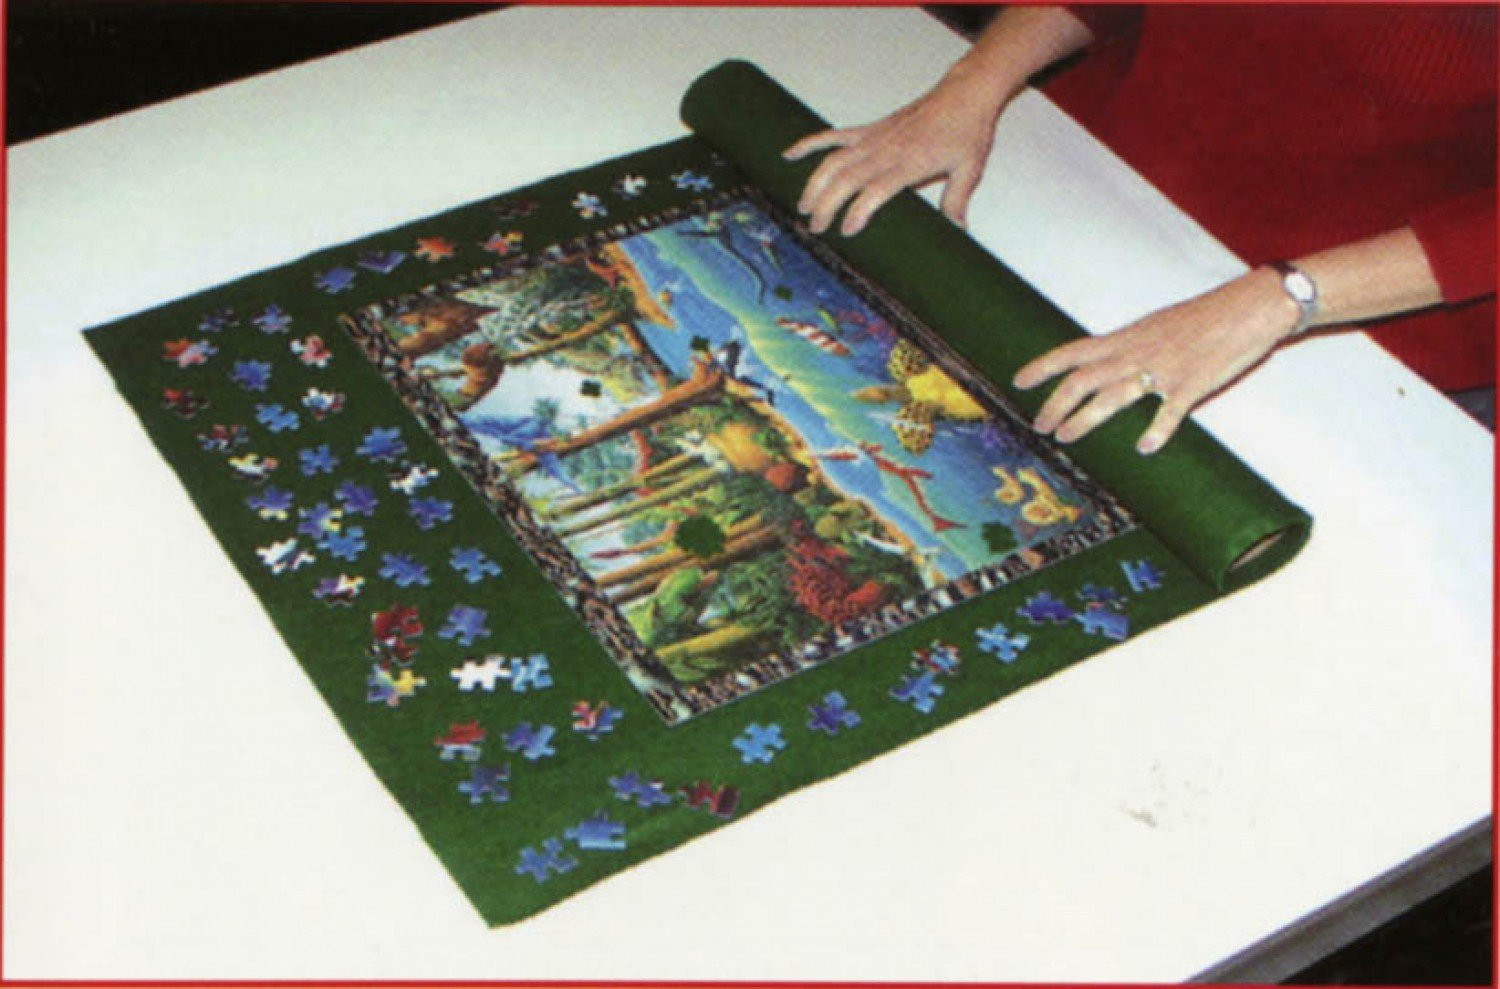 Puzzle Roll-Up *Now Taking Pre-Orders*